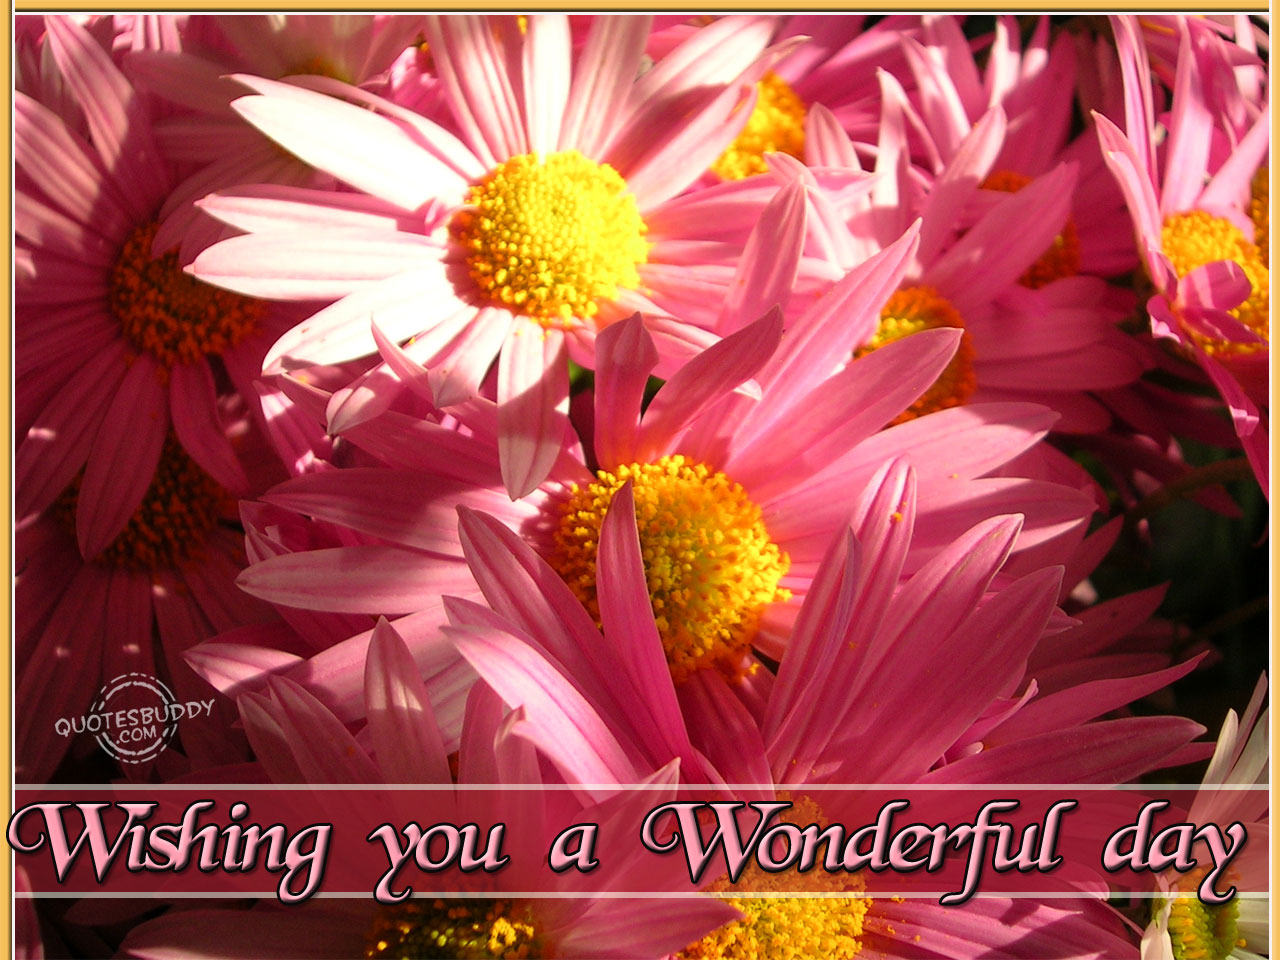 wishing-you-a-wonderful-day-good-day-quote.jpg